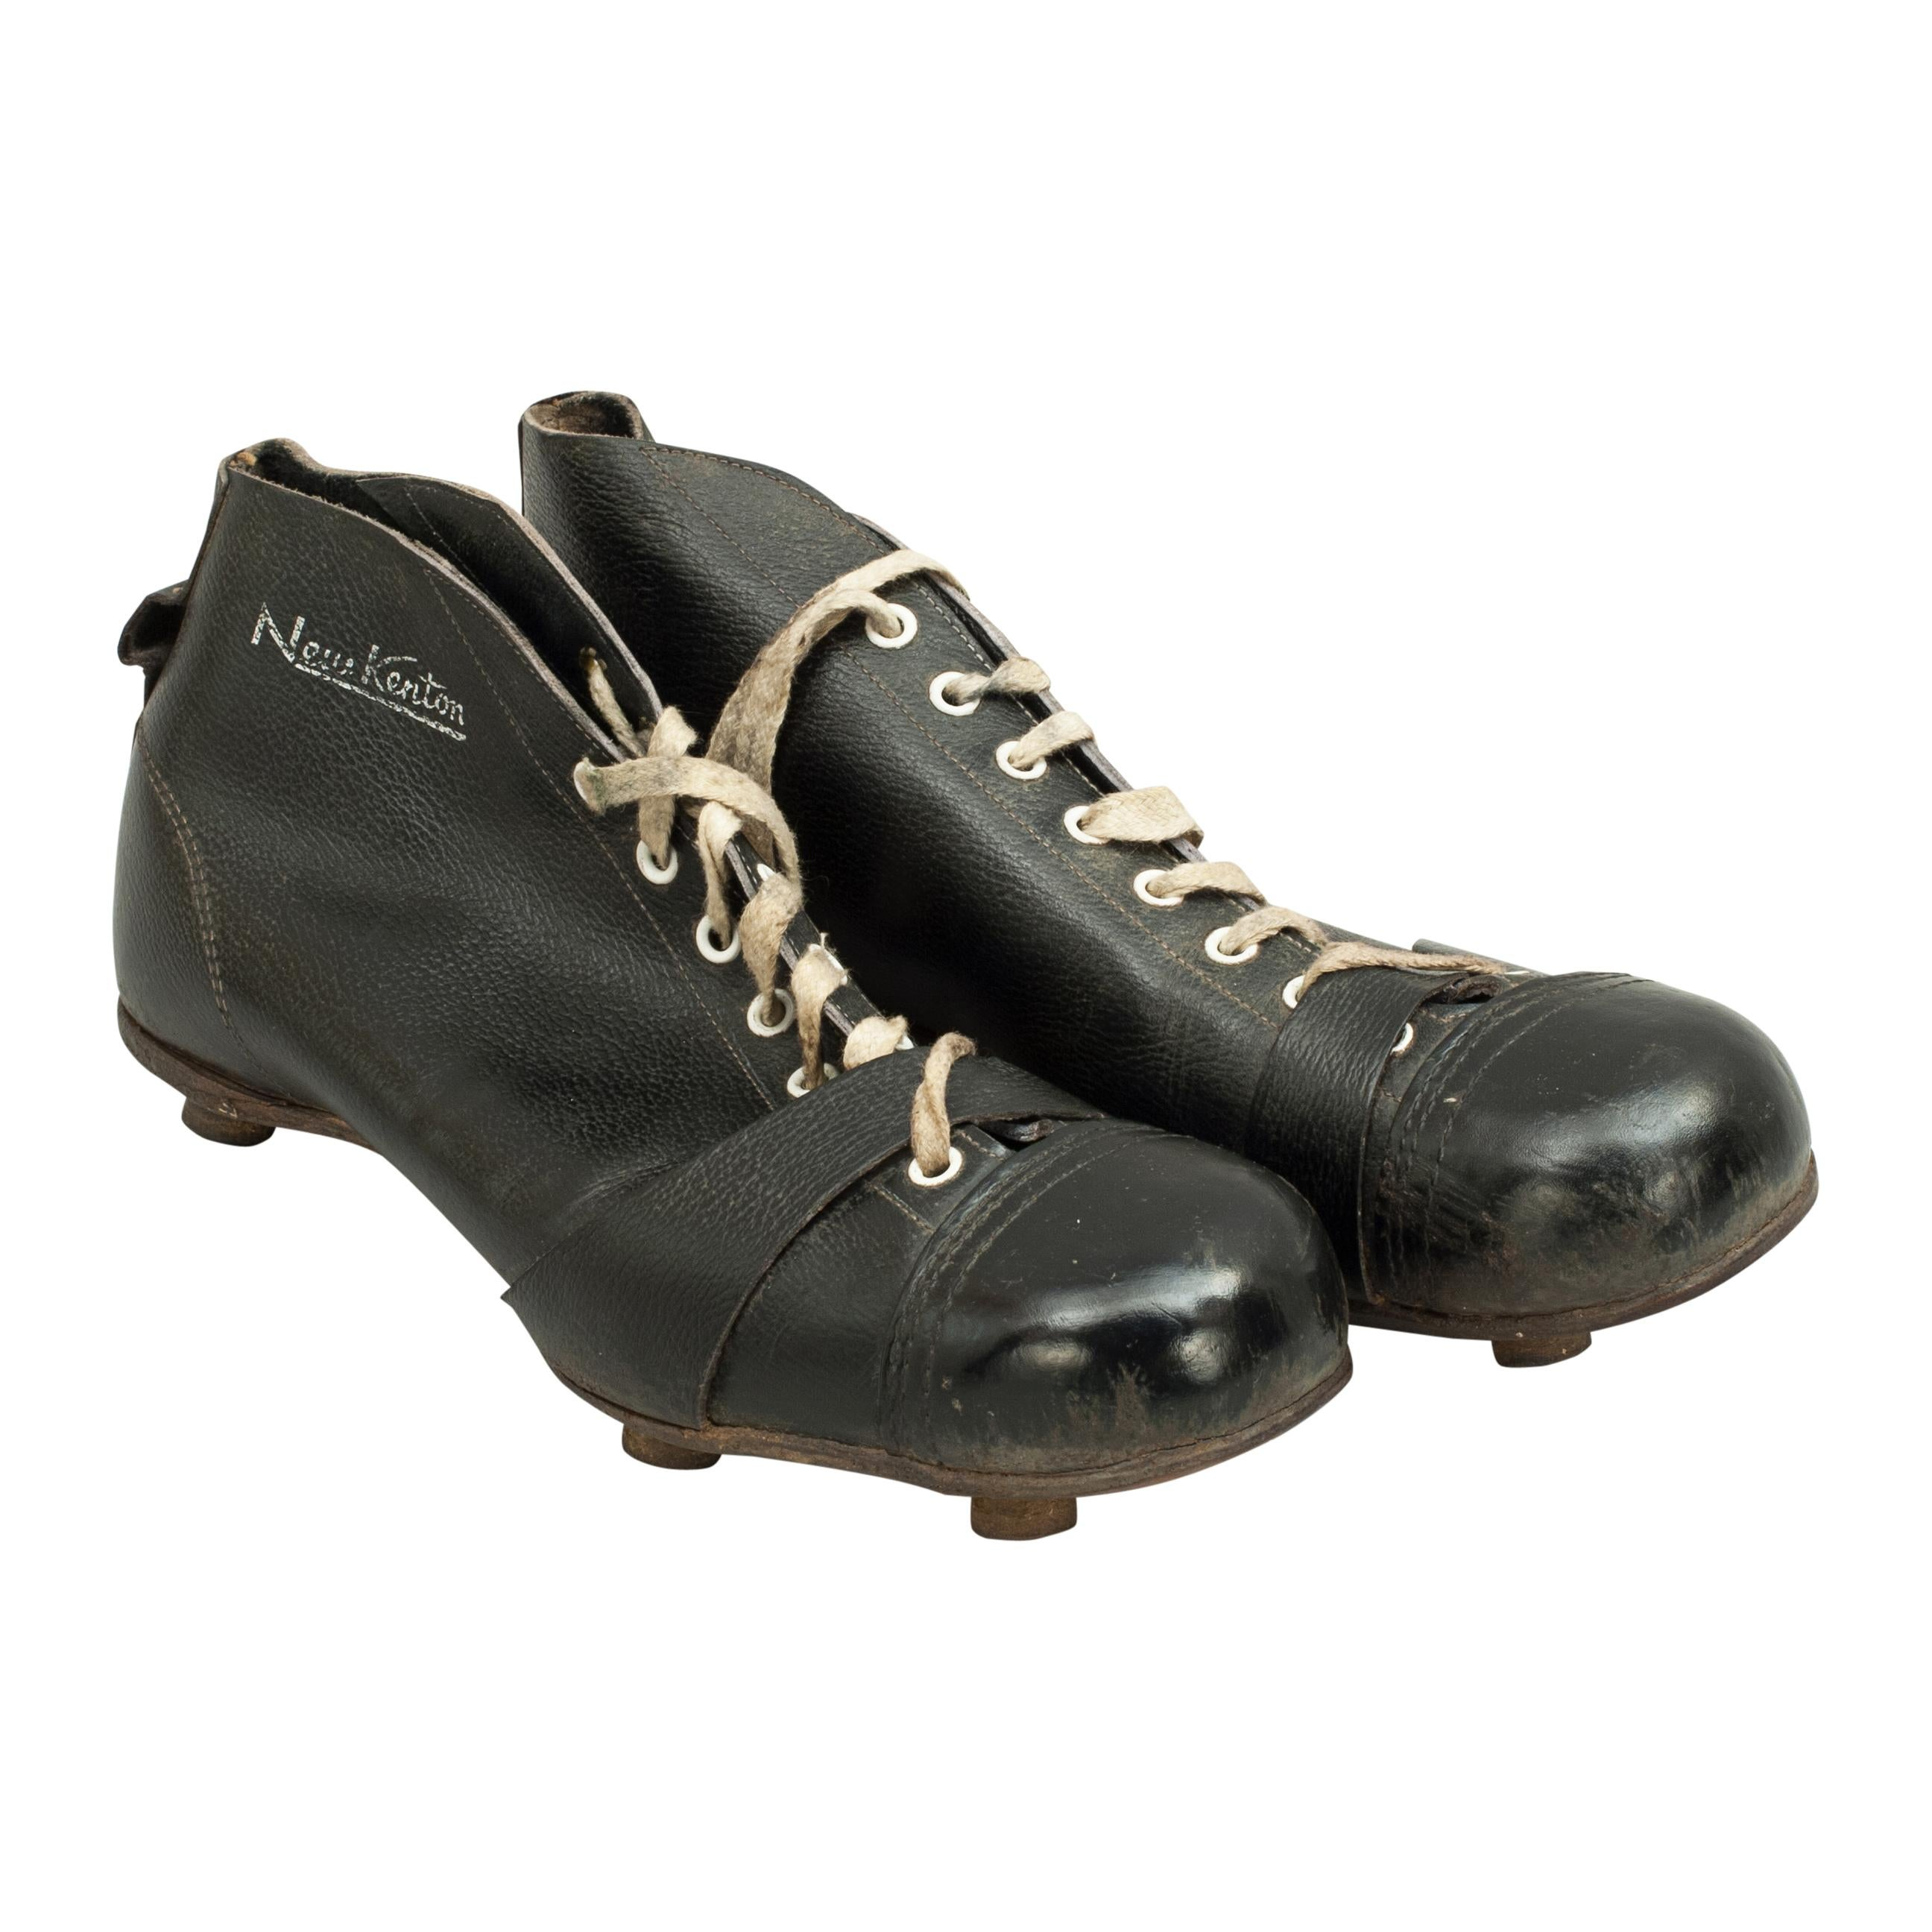 Vintage Leather Football Boots, New